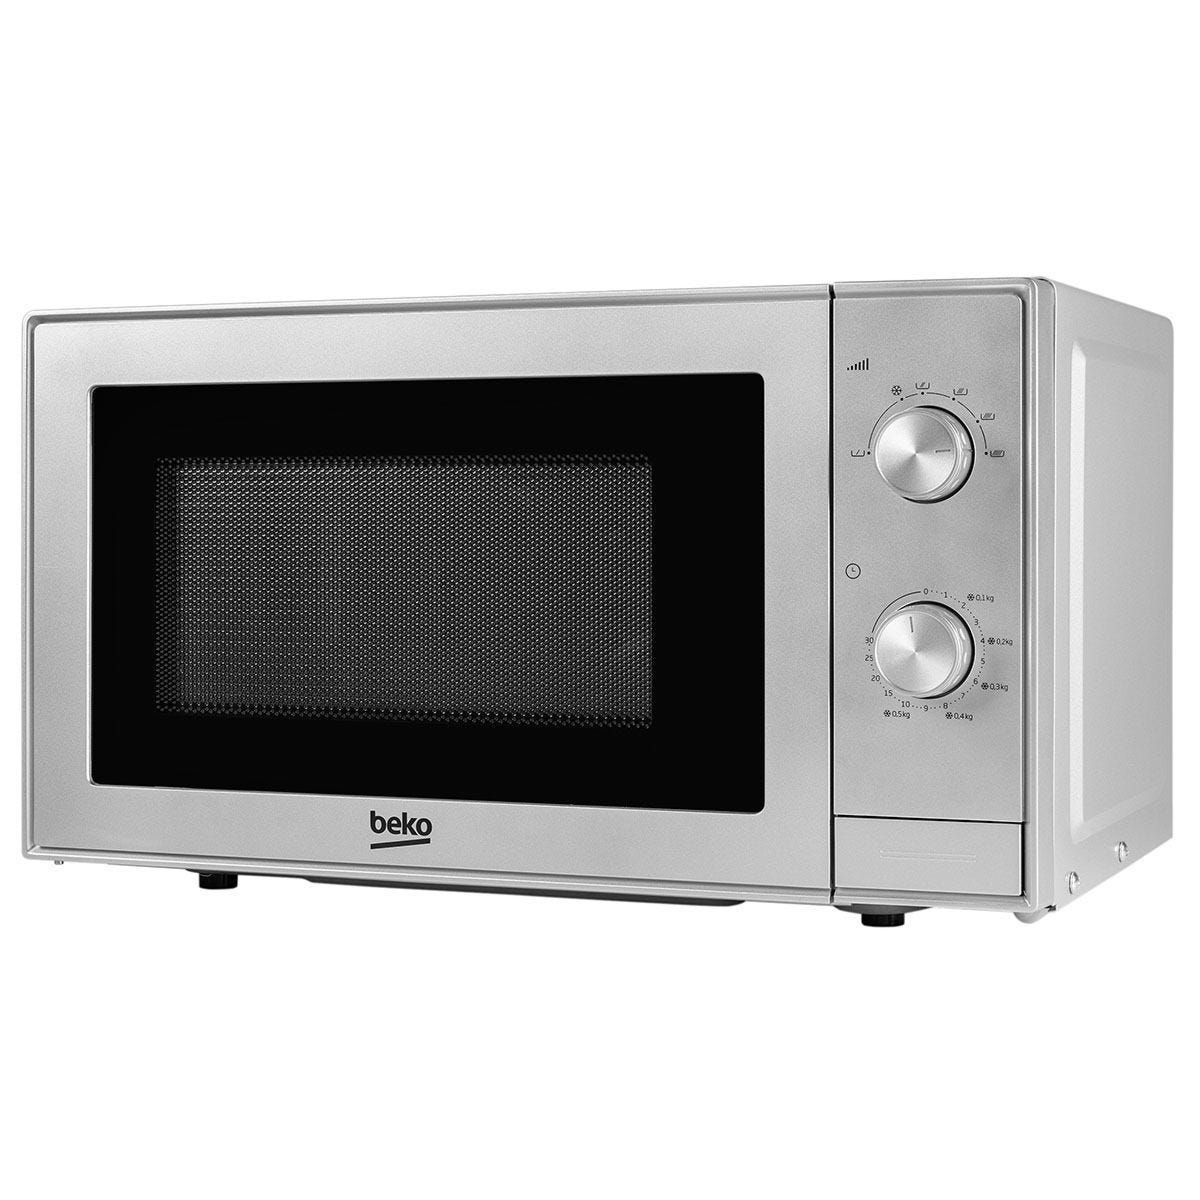 Beko MOC20100S 45cm Compact Microwave - Silver